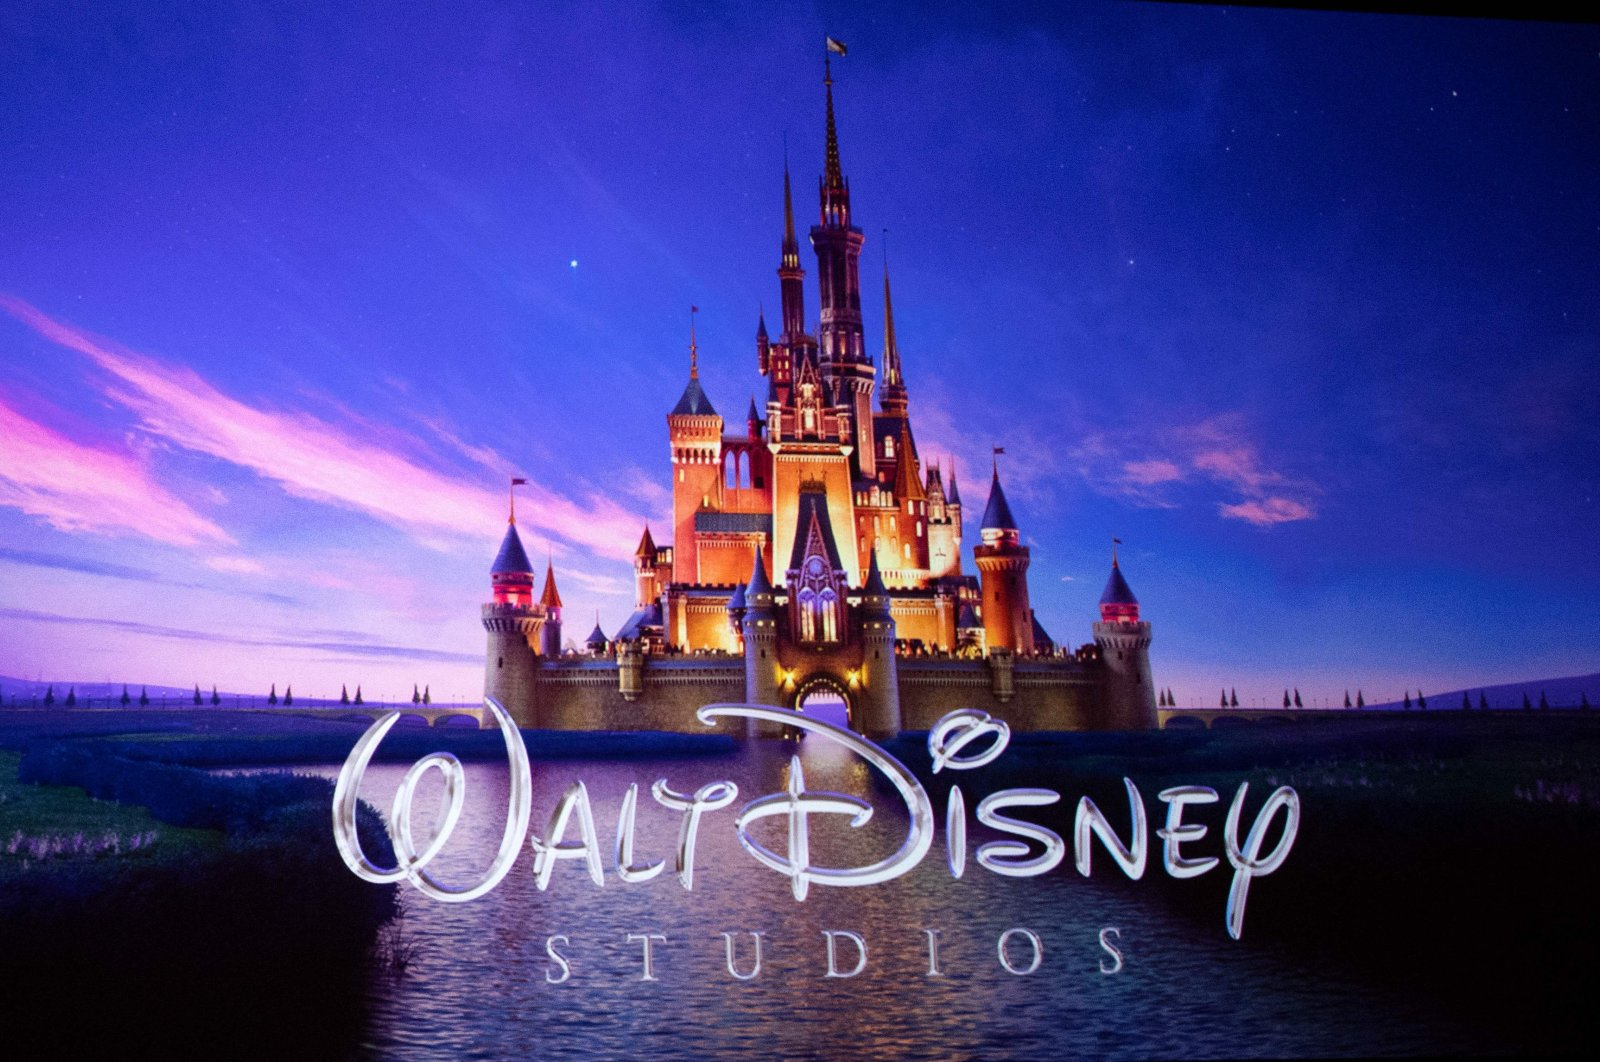 The Walt Disney Studios logo is projected onscreen during the CinemaCon Walt Disney Studios Motion Pictures Special presentation at the Colosseum Caesars Palace, in Las Vegas, Nevada, U.S., April 3, 2019. (AFP Photo)